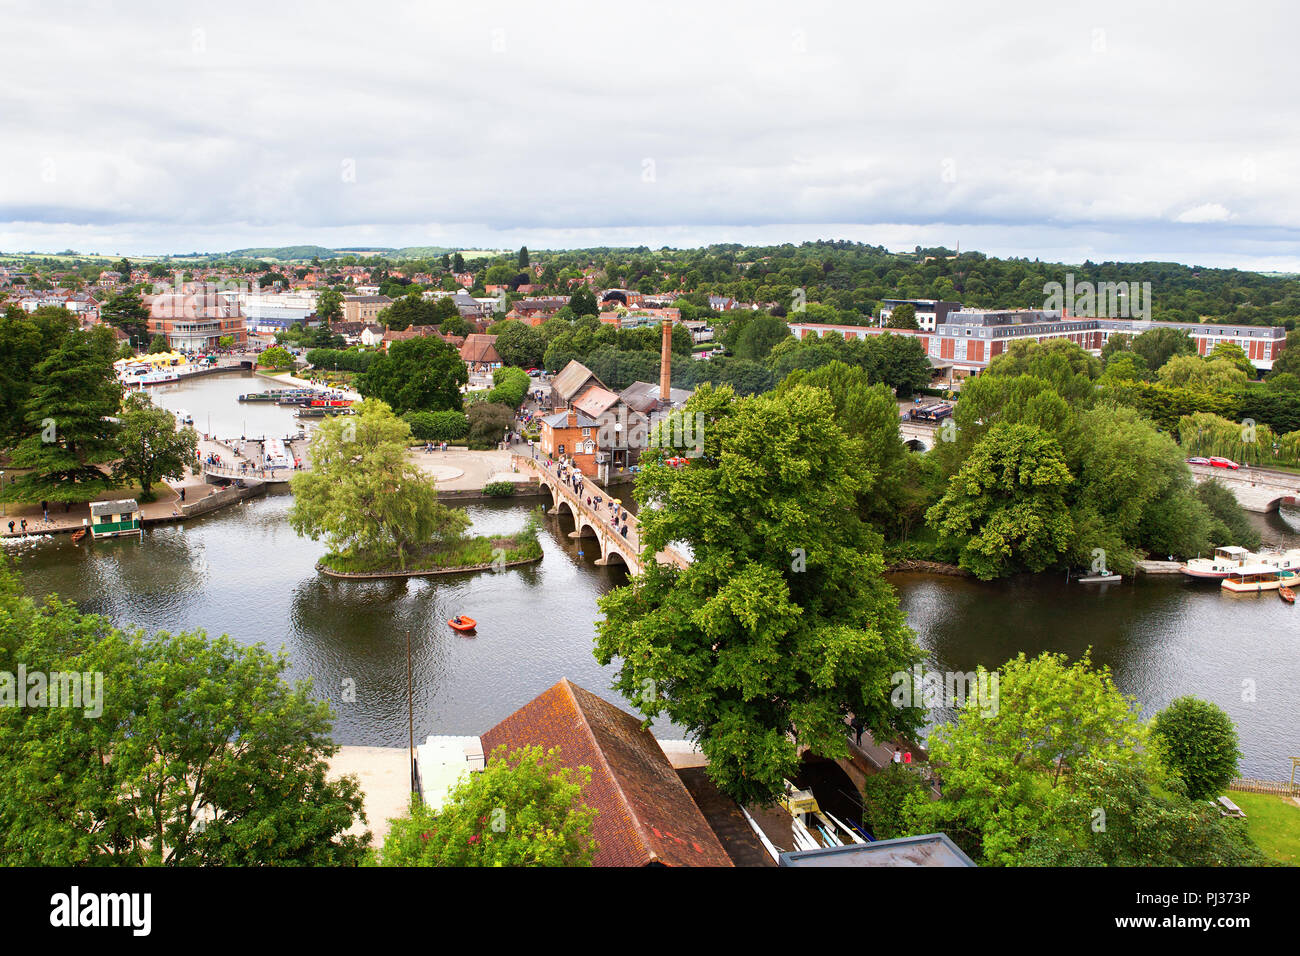 View of Stratford-Upon-Avon from the air, Warwickhire, England, the birthplace of William Shakespeare, selective focus - Stock Image